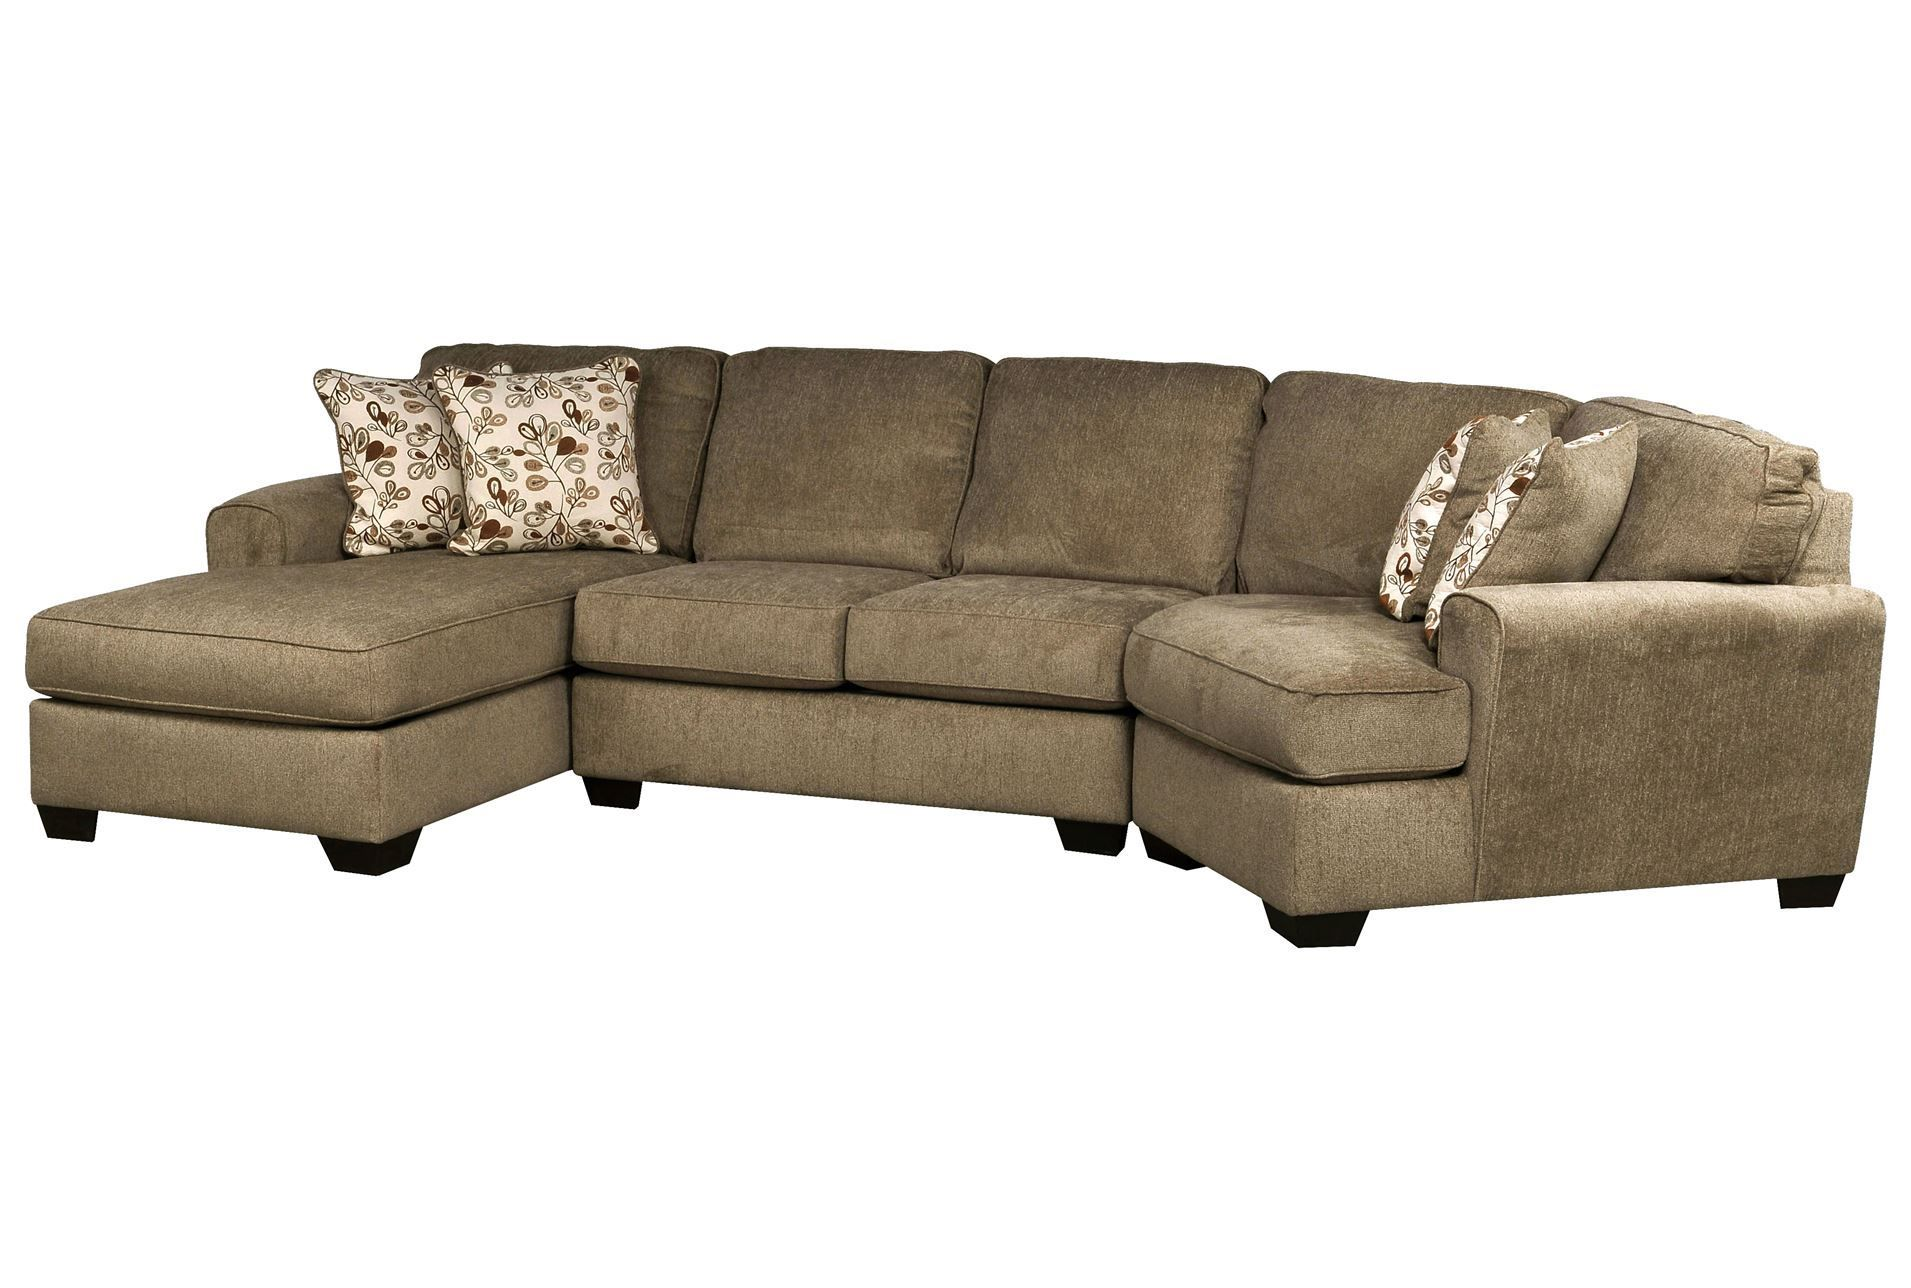 sectional cuddler with furniture poseidon kane piece living chaise sectionals products ii s room